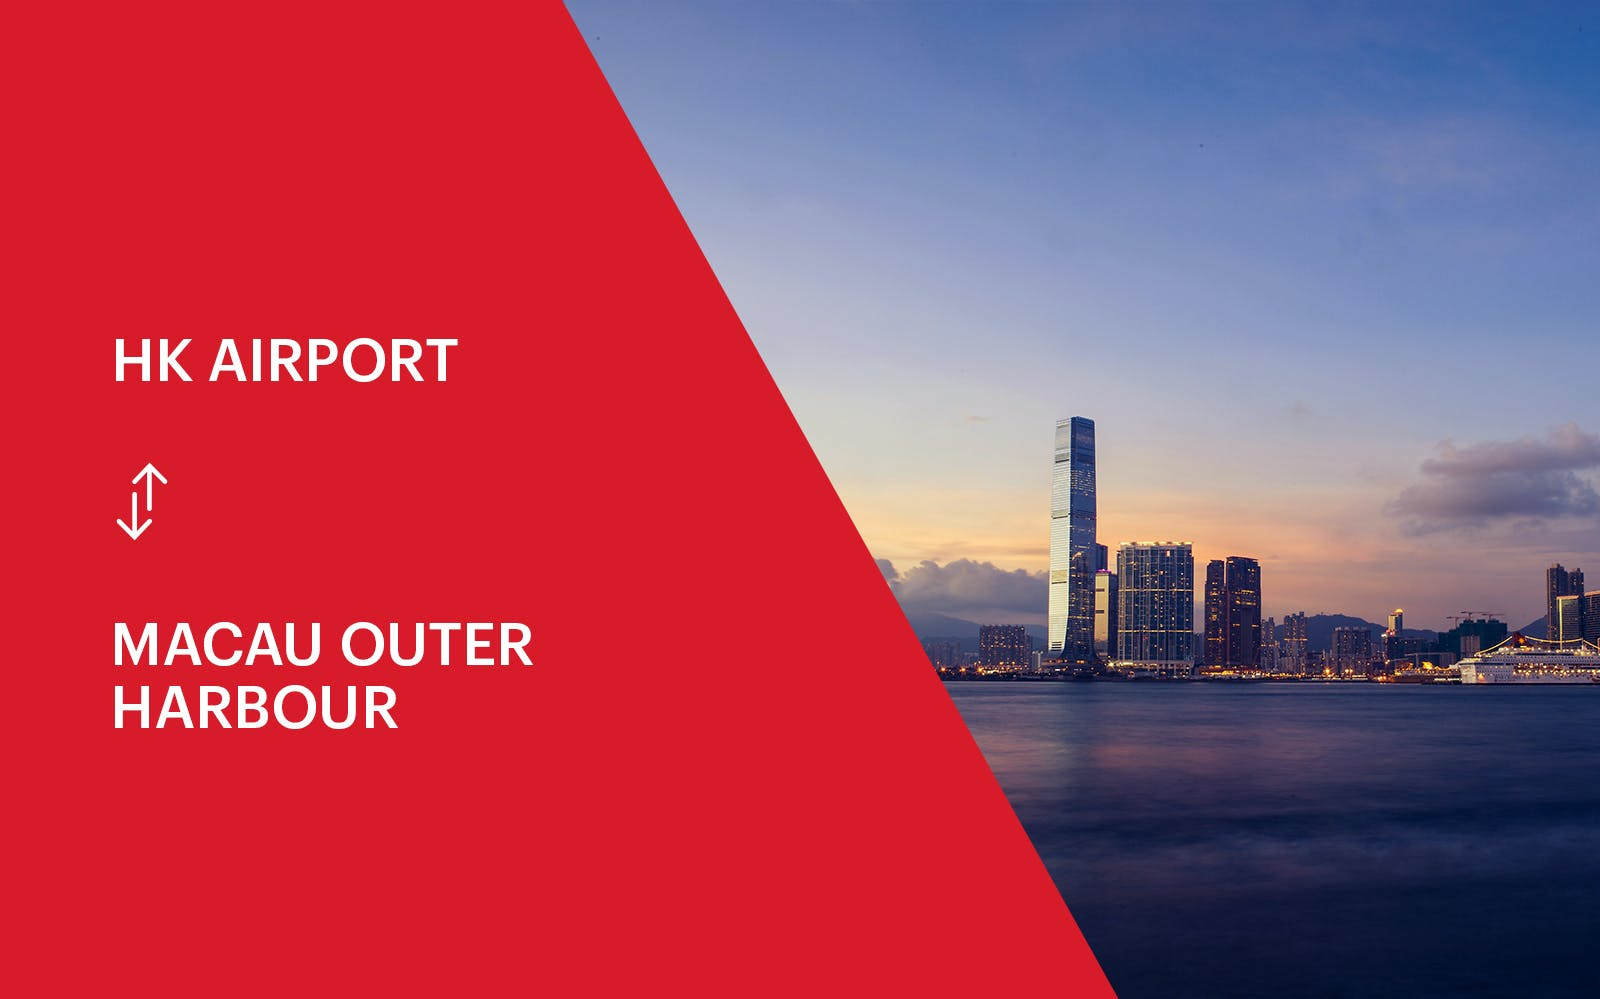 turbojet ferry transfers between hk airport & macau outer harbour-1